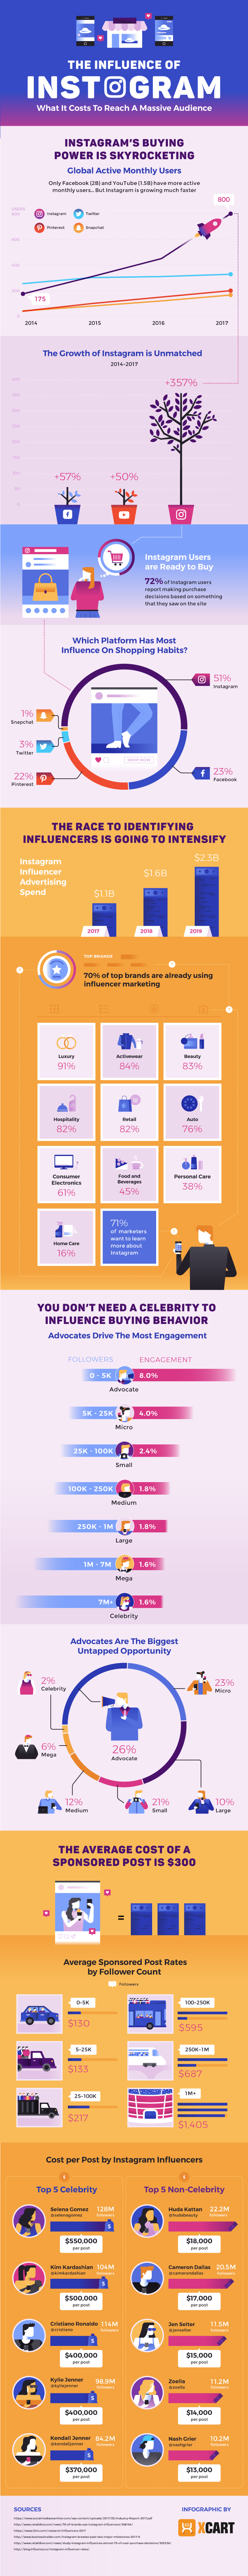 Instagram Marketing For E-commerce